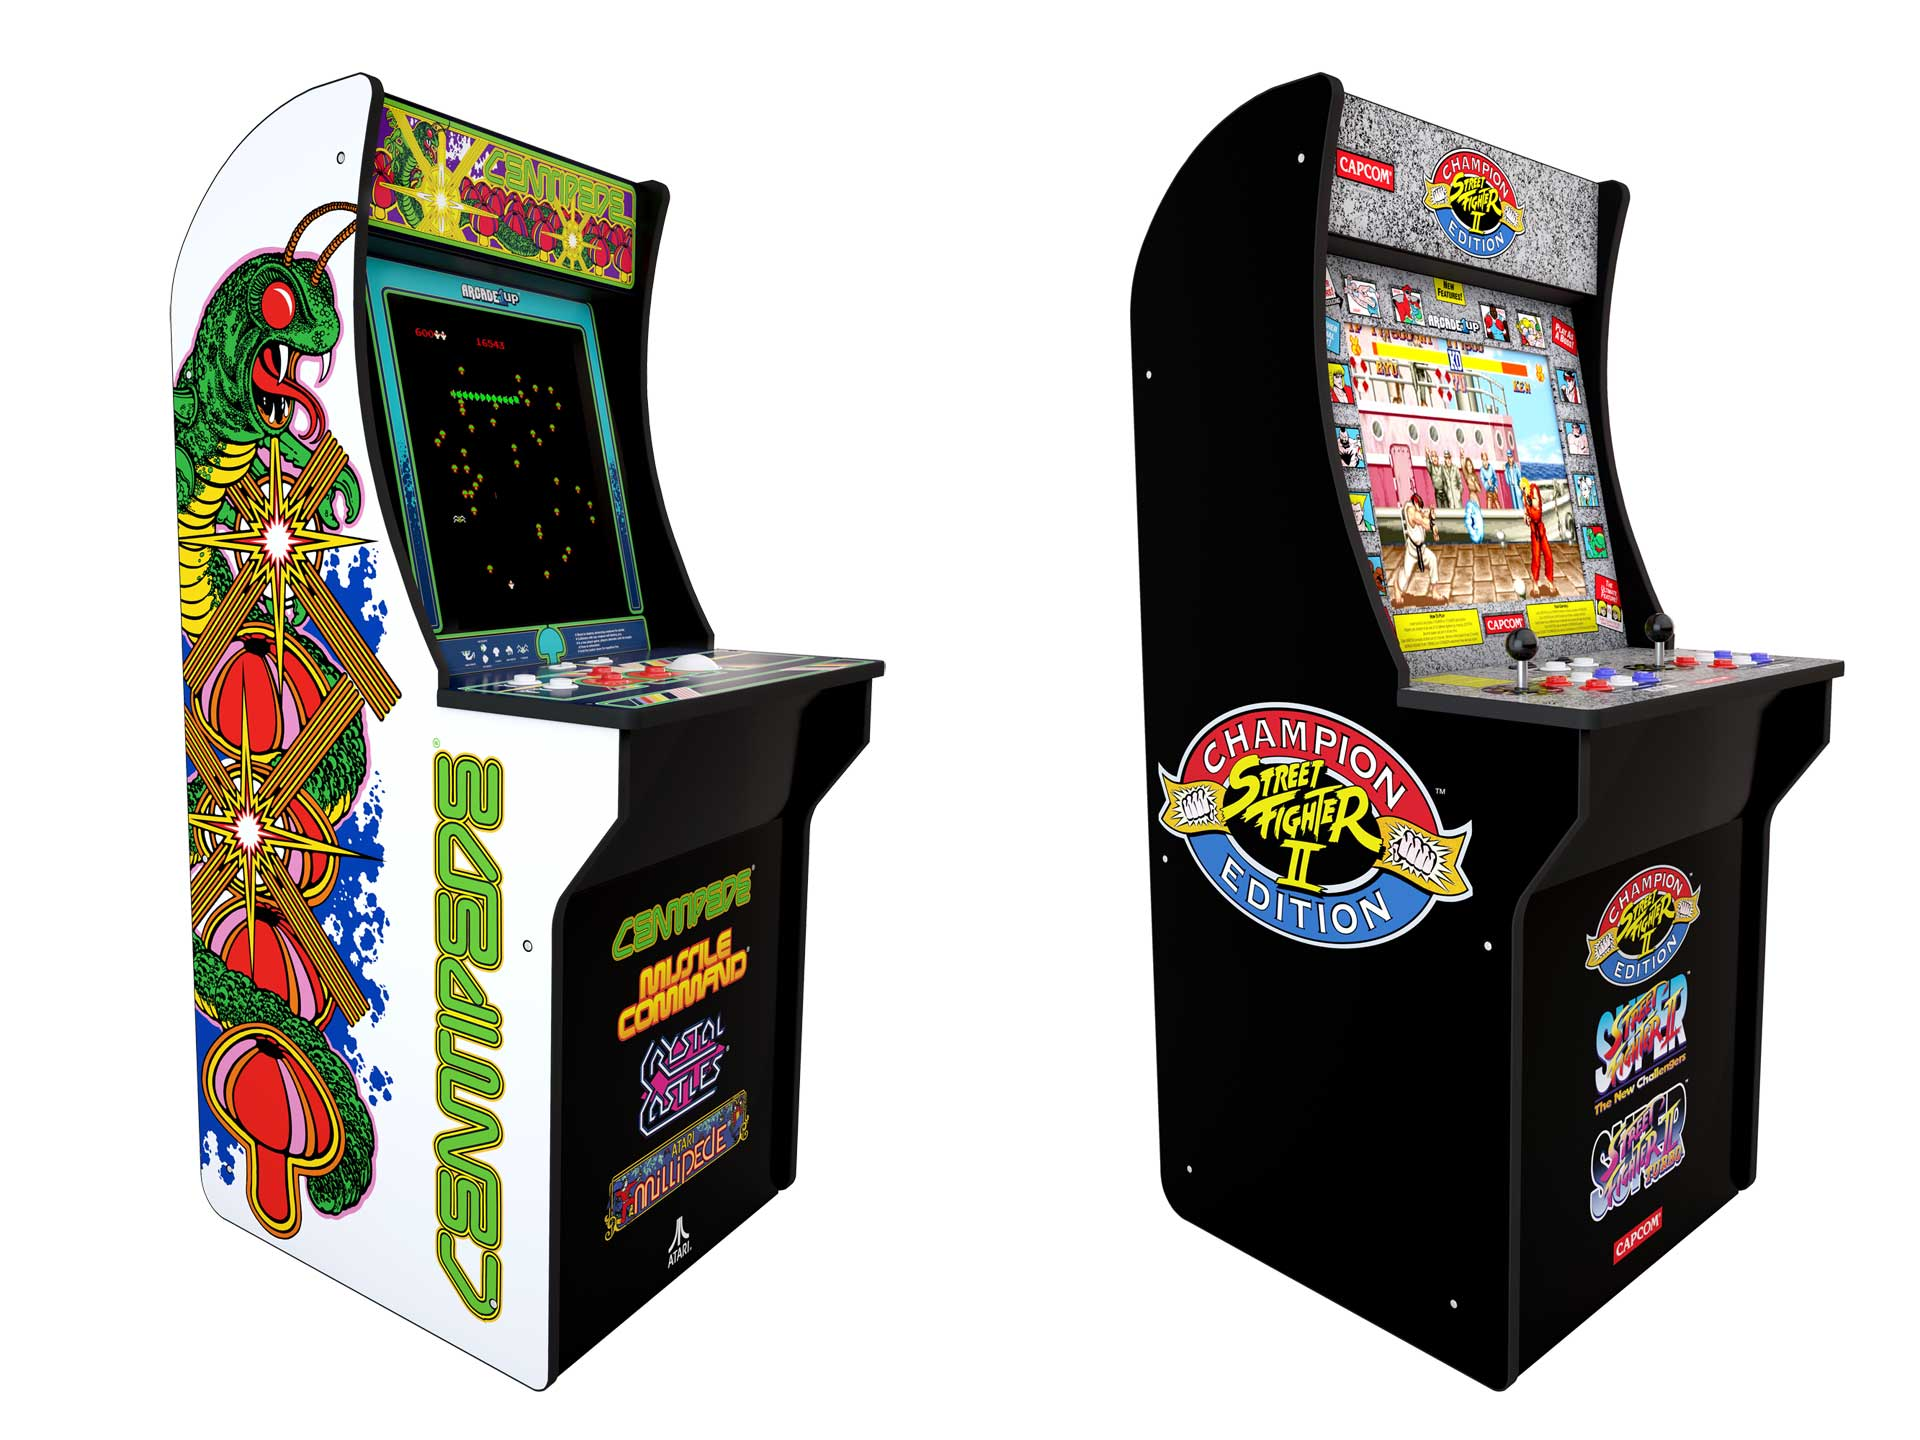 (Update) Arcade1Up arcade cabinets gets $50 off and freebie on Cyber Monday screenshot